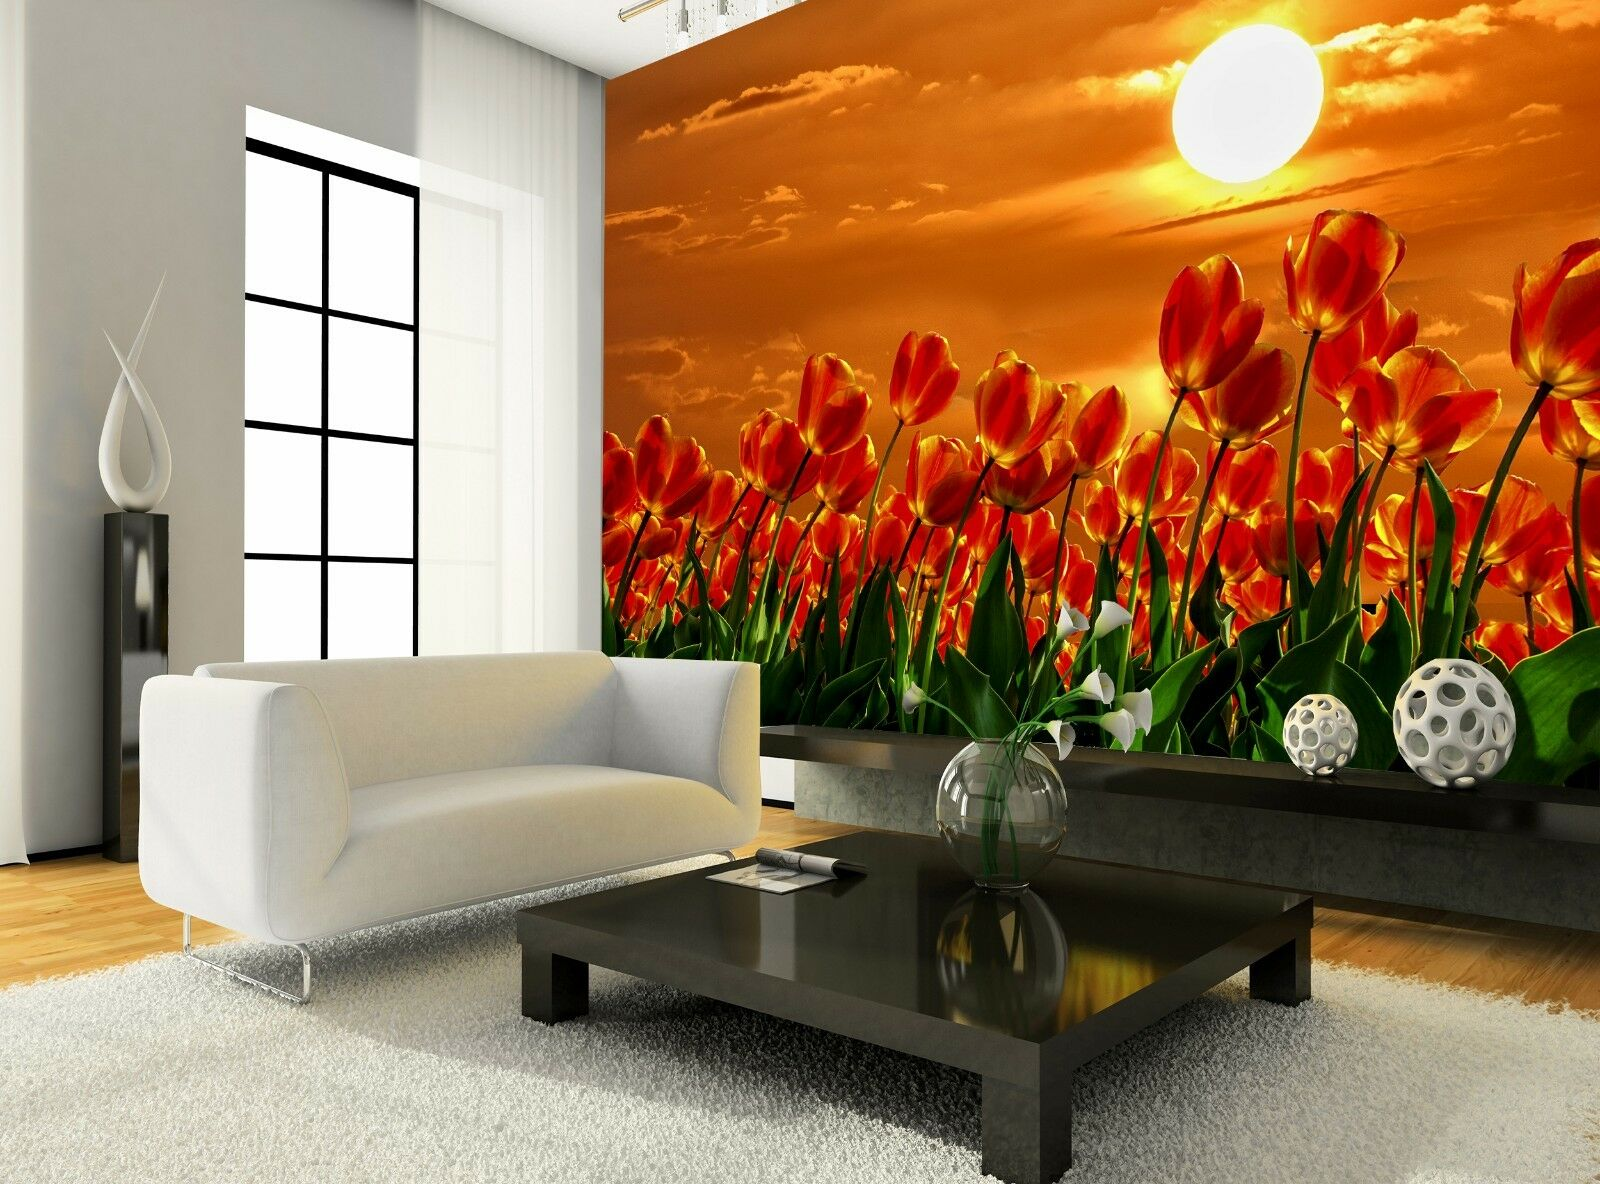 rosso rosso rosso Tulips  Wall Mural Photo Wallpaper GIANT DECOR Paper Poster Free Paste 730f4e